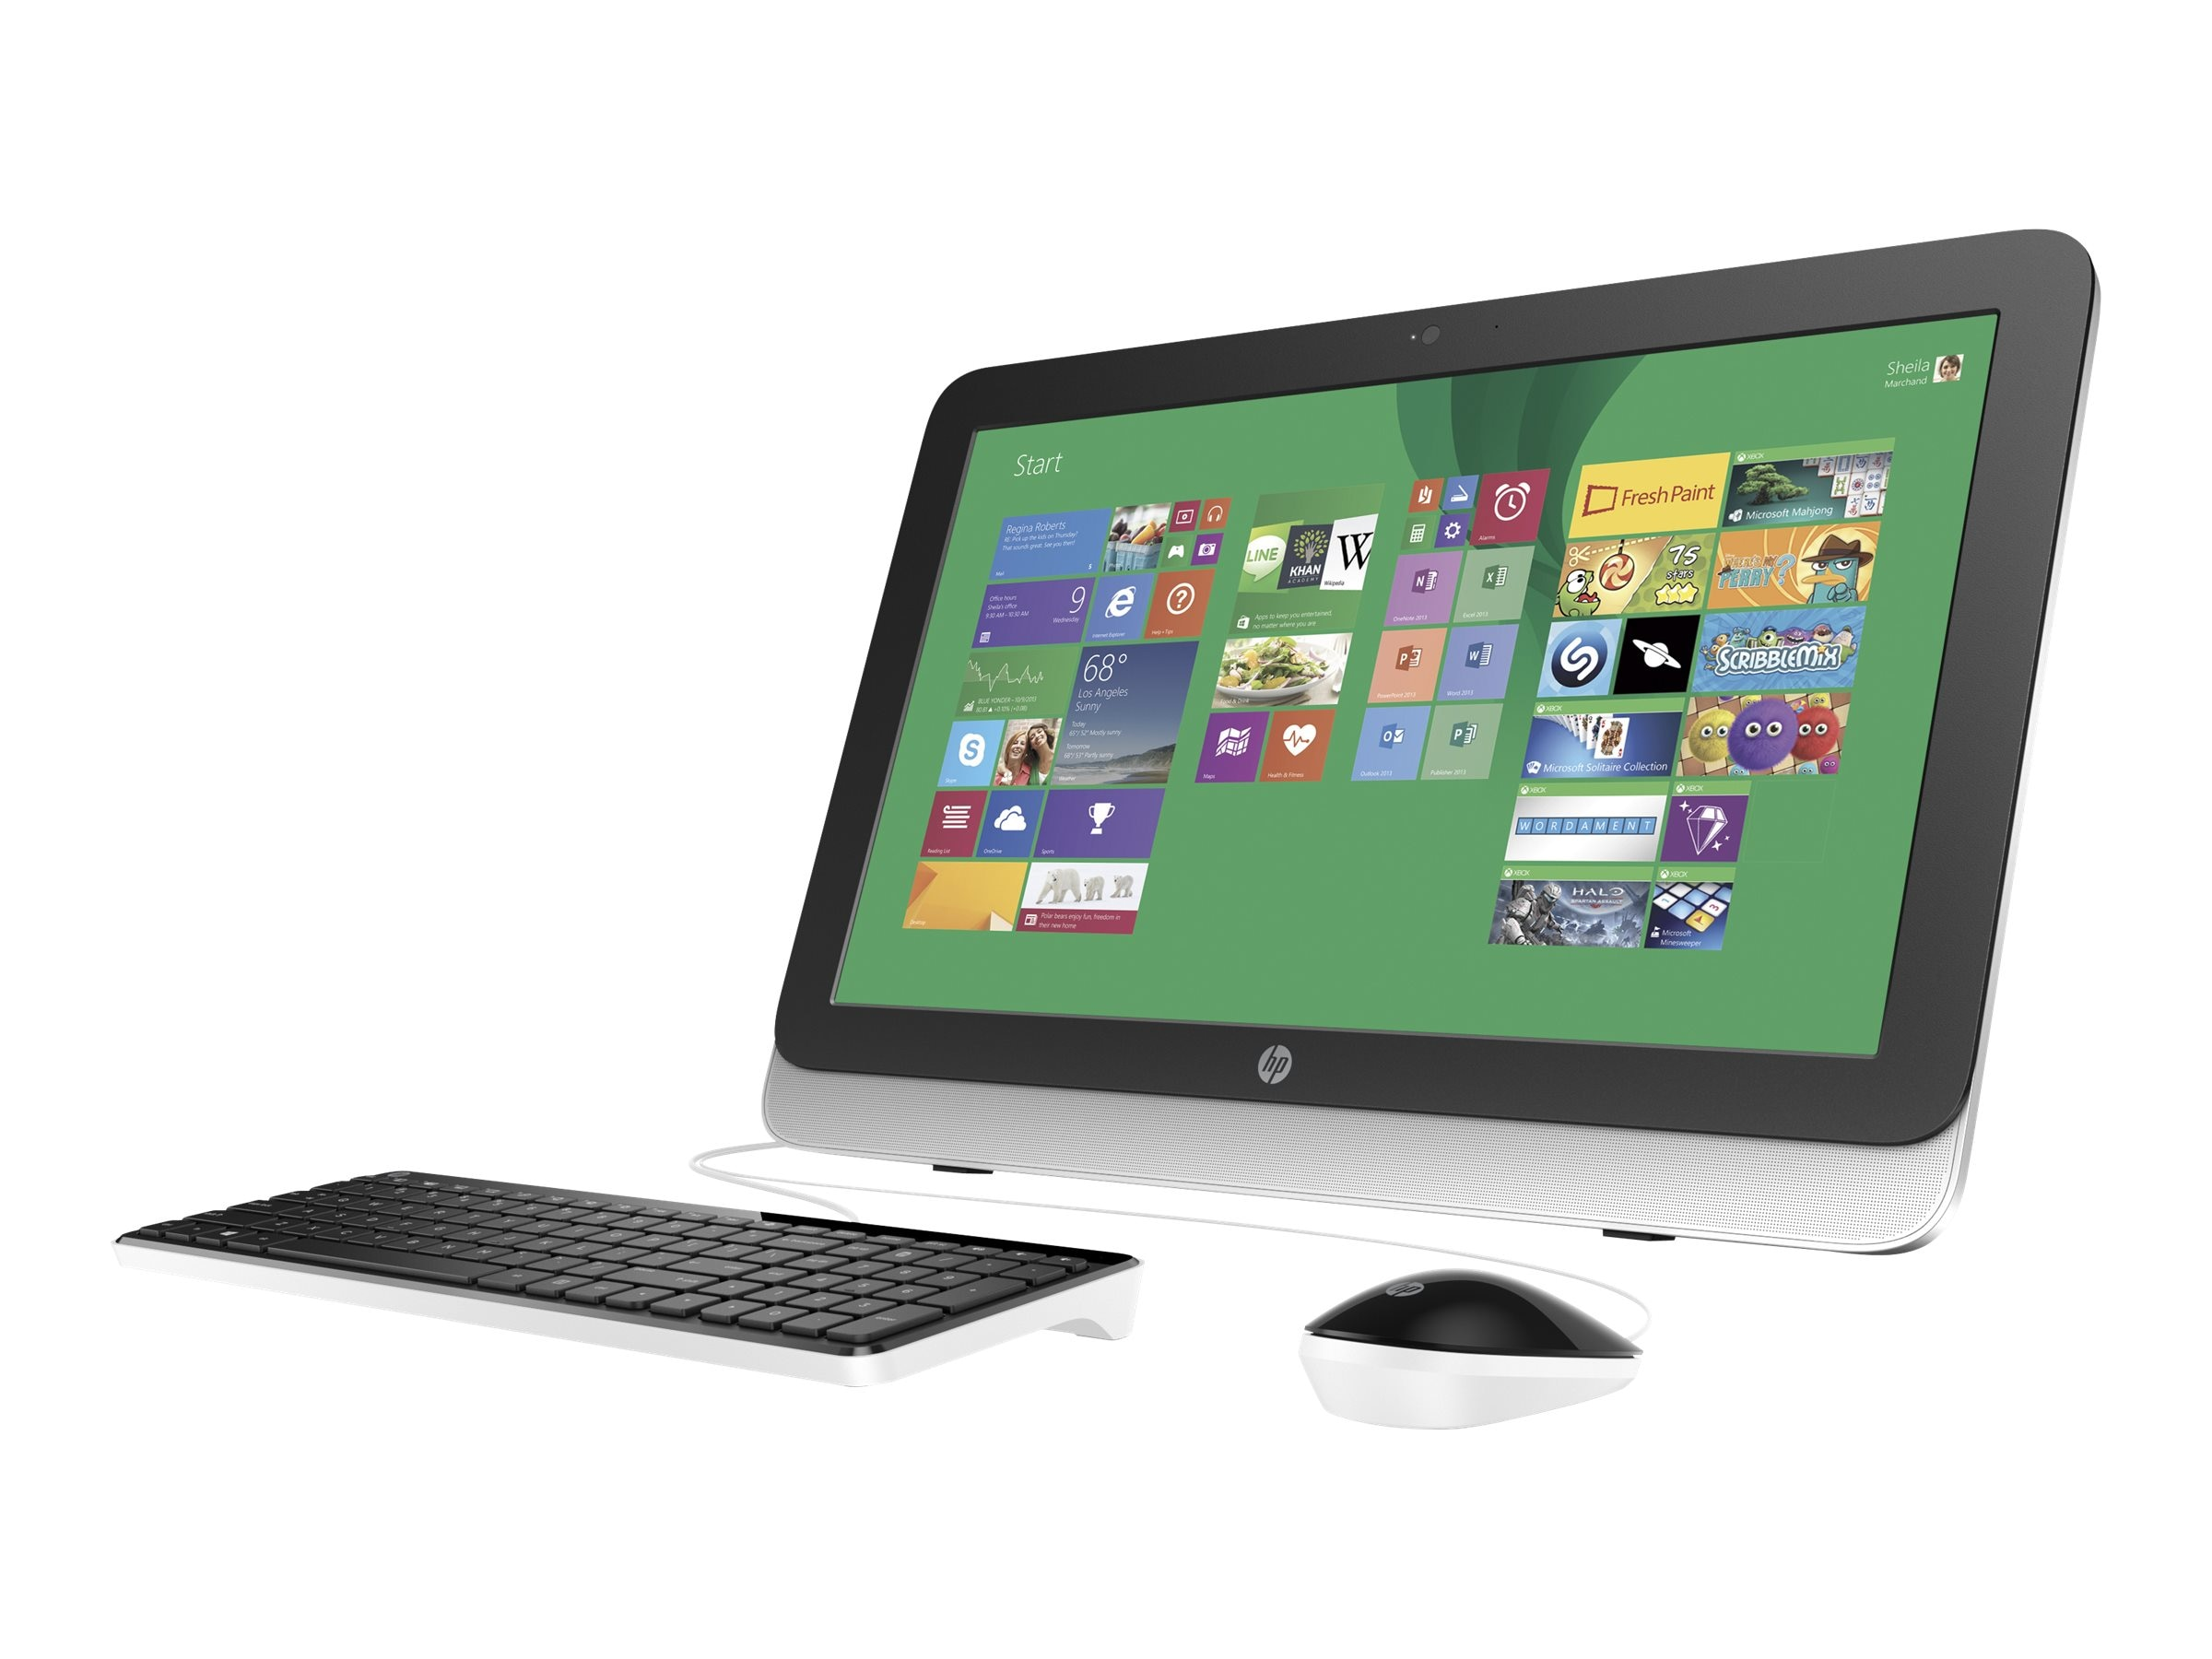 HP 22-3020 AIO AMD A6-6310 4GB 500GB DVDRW WL 21.5 W8.1, L9K80AA#ABA, 23619050, Desktops - All-in-One